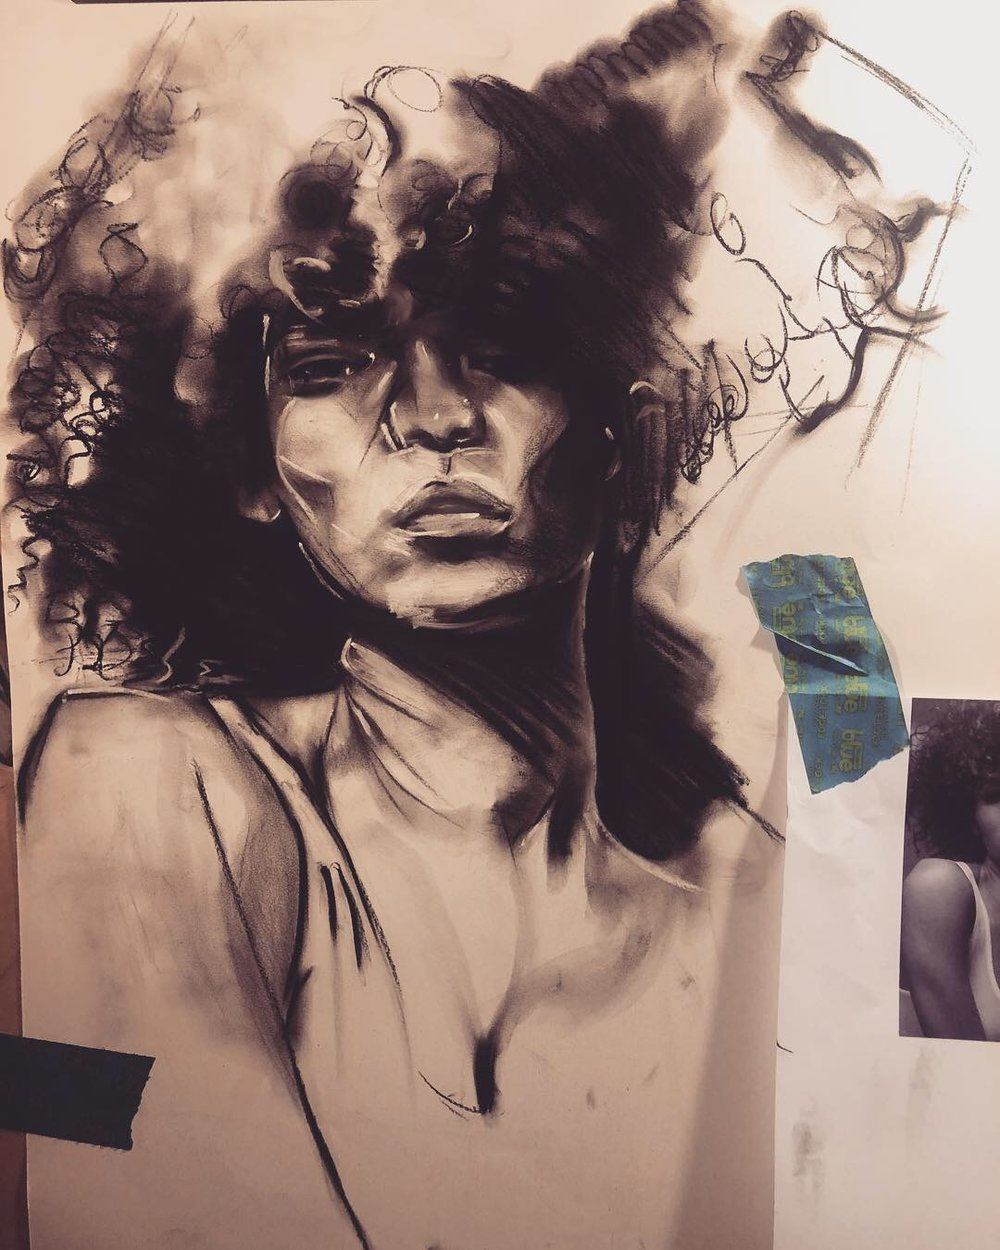 MESSY SKETCHES FROM A MESSY MIND - Original 18x24IN Charcoal & Graphite Sketches starting at $55.00